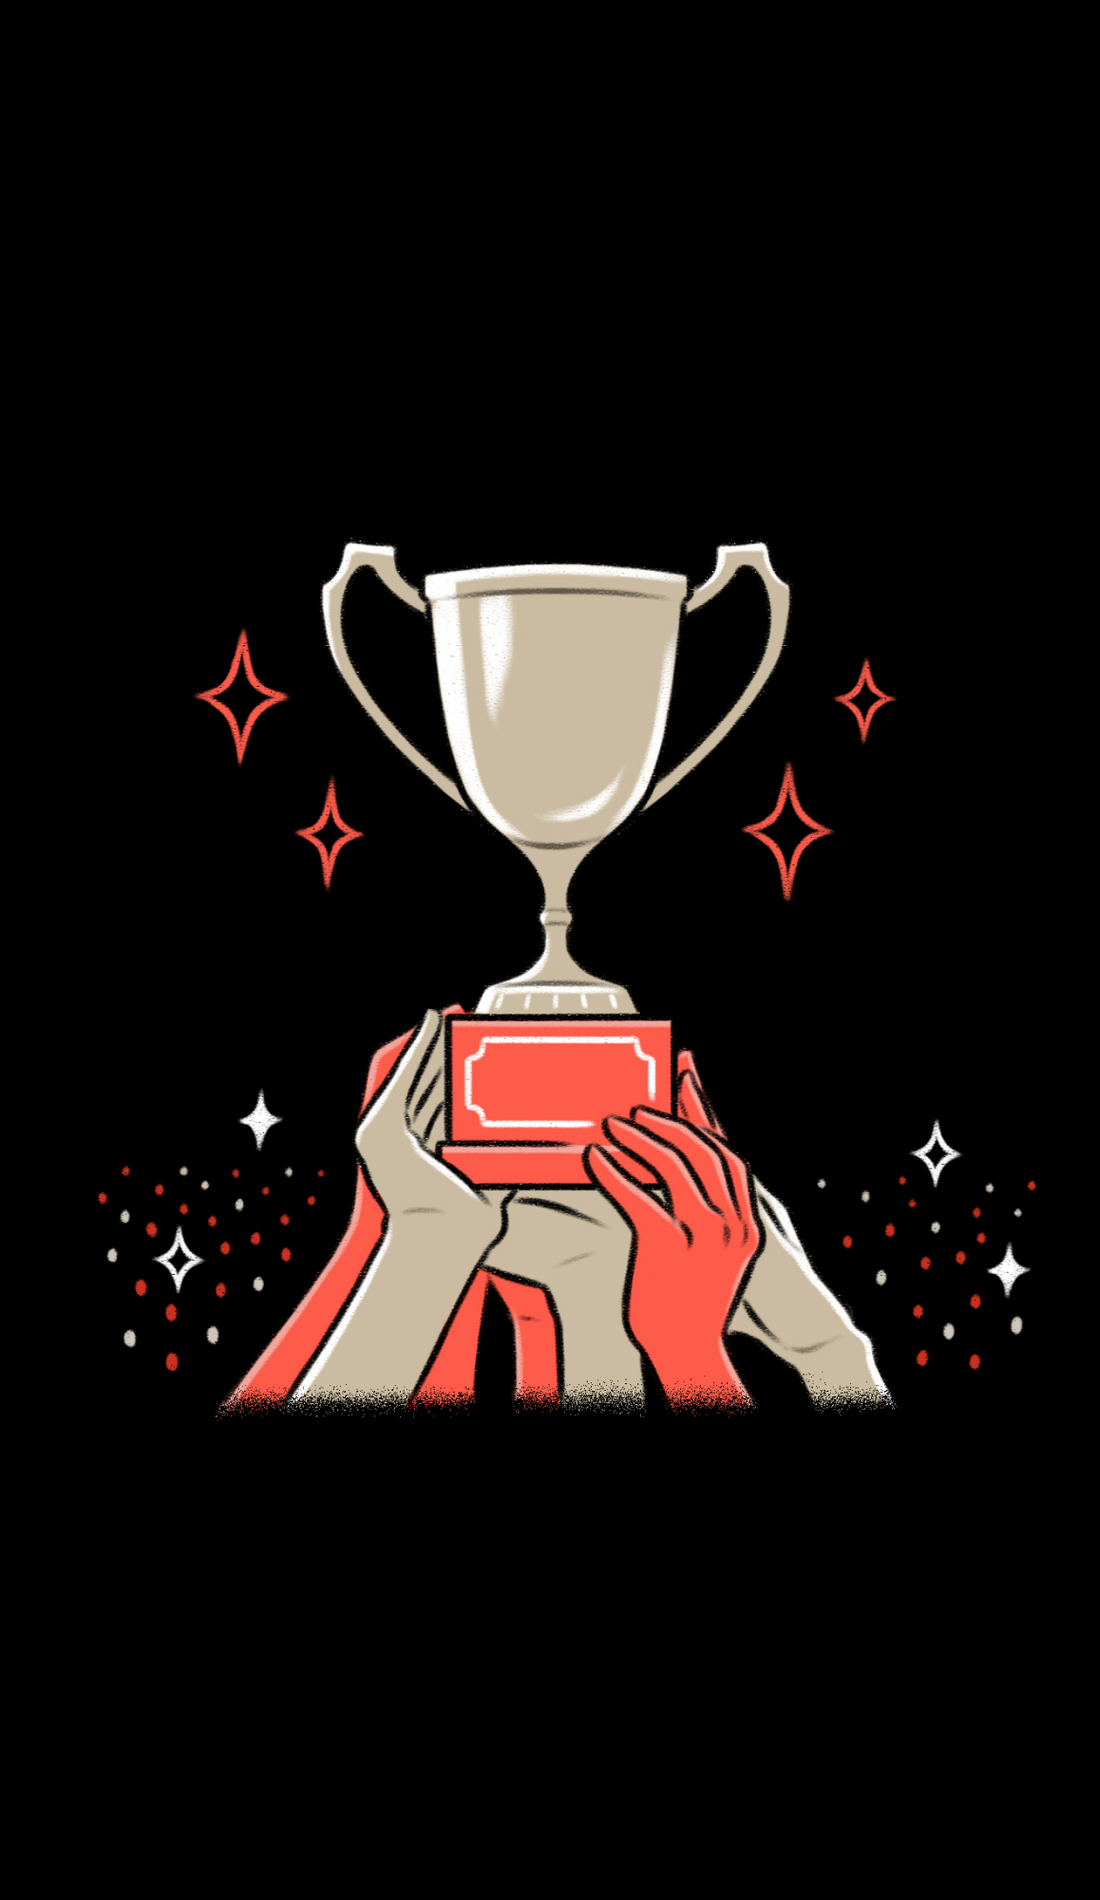 A USA Rugby Men's Eagles live event